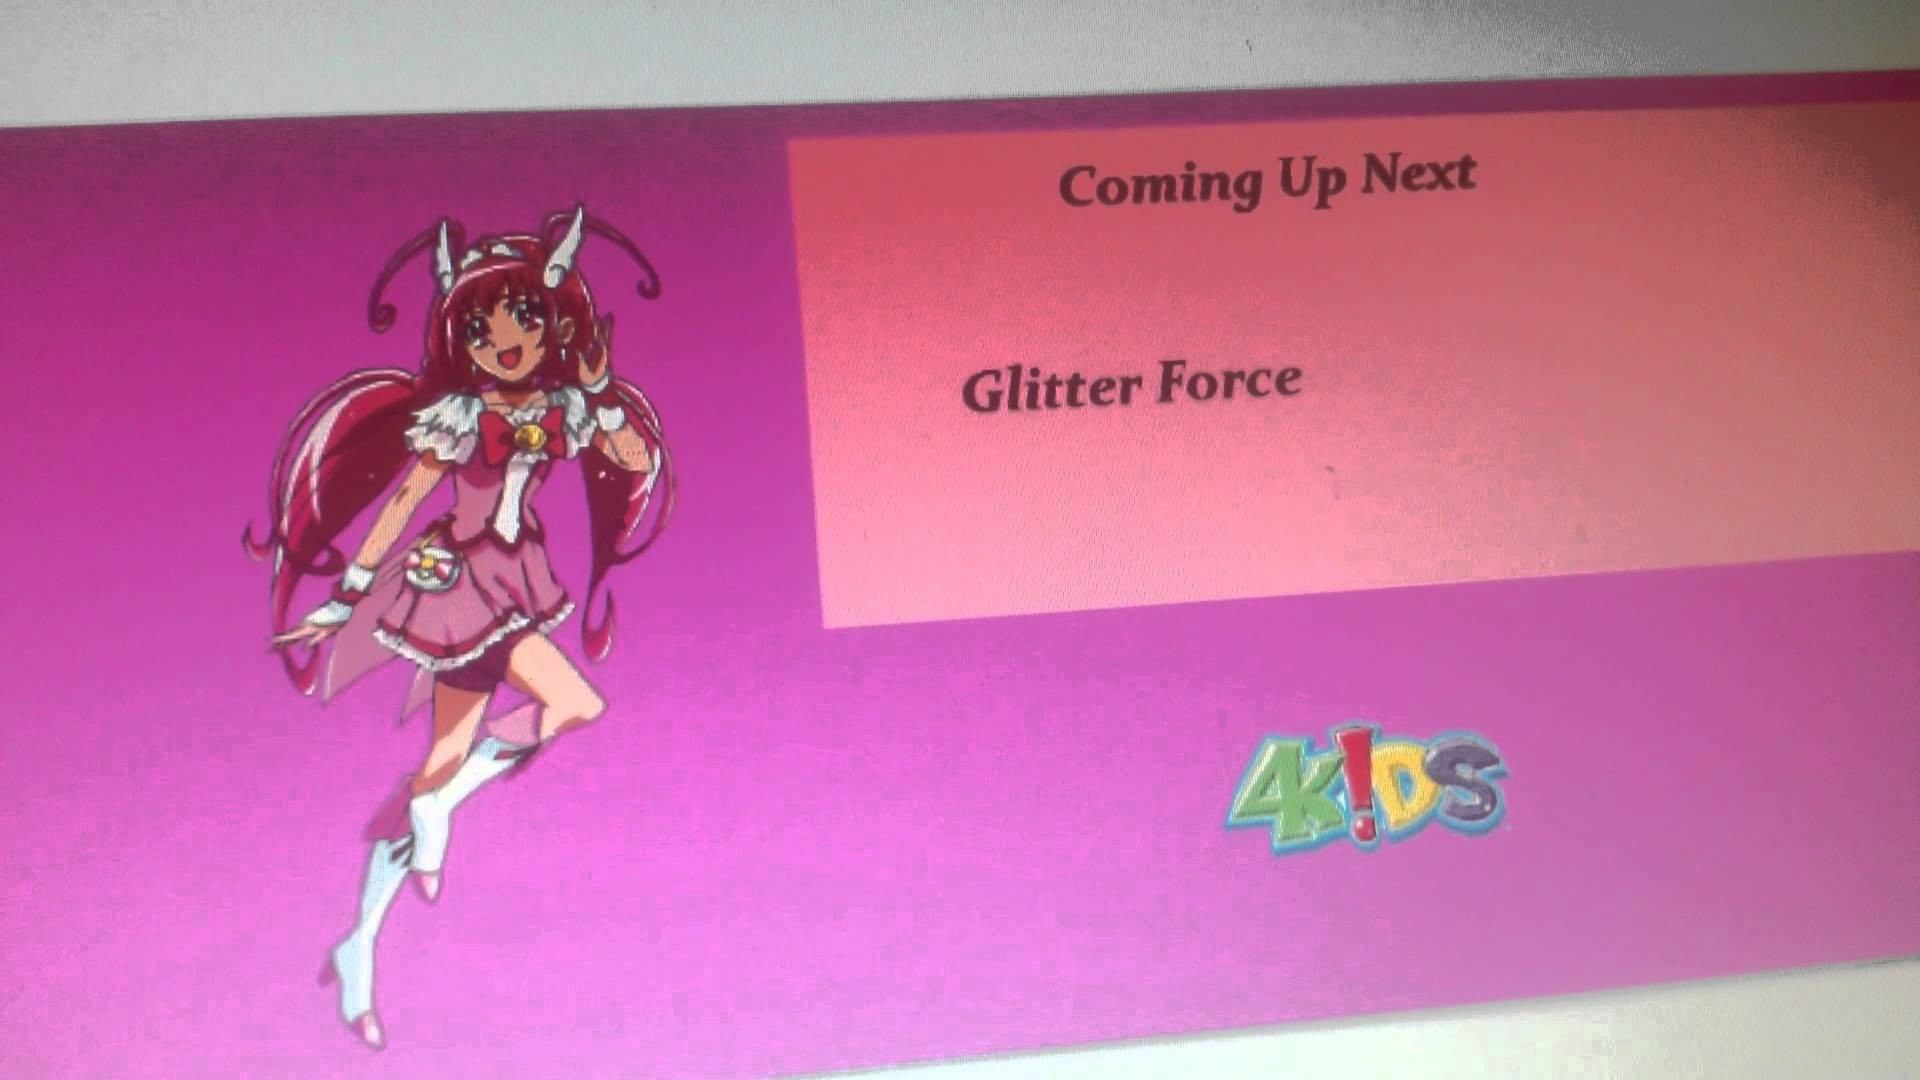 Glitter Force Coming Up Next 4Kids